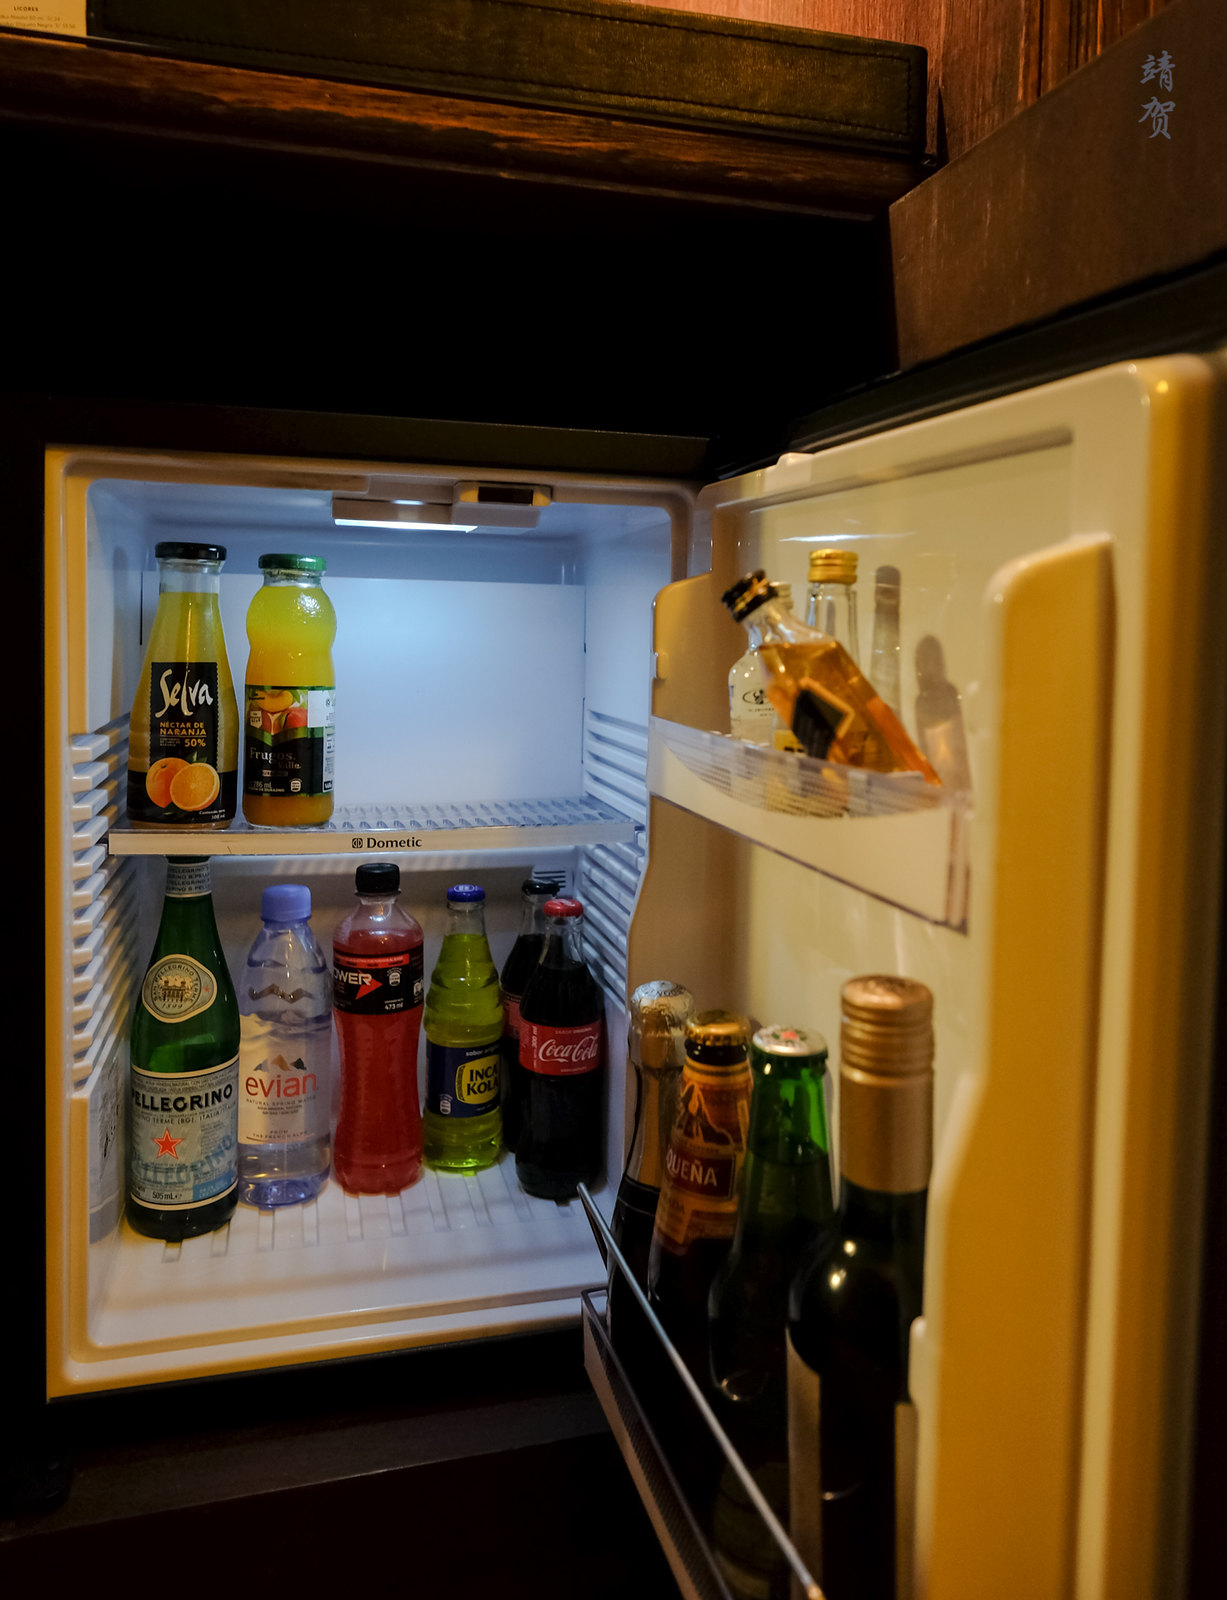 Minibar in the room